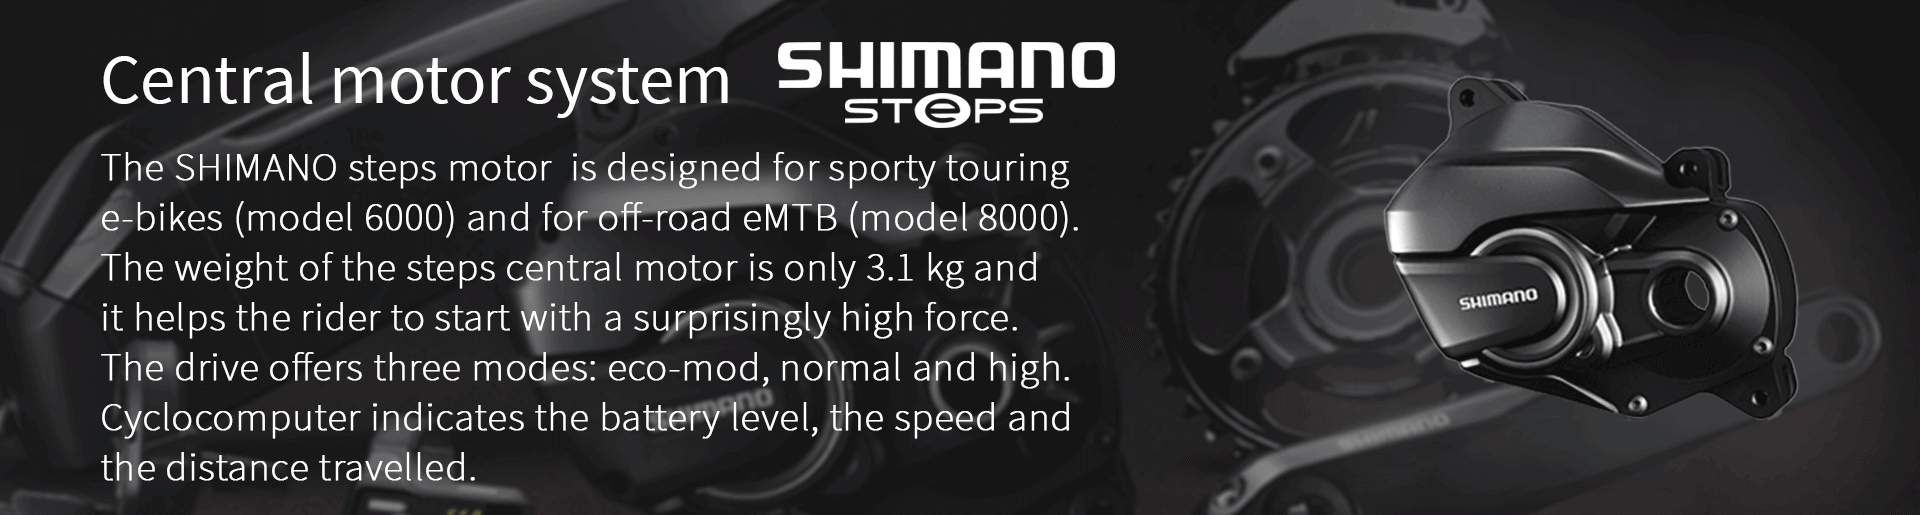 The SHIMANO steps motor  is designed for sporty touring  e-bikes (model 6000) and for off-road eMTB (model 8000).  The weight of the steps central motor is only 3.1 kg and  it helps the rider to start with a surprisingly high force.  The drive offers three modes: eco-mod, normal and high.  Cyclocomputer indicates the battery level, the speed and  the distance travelled.